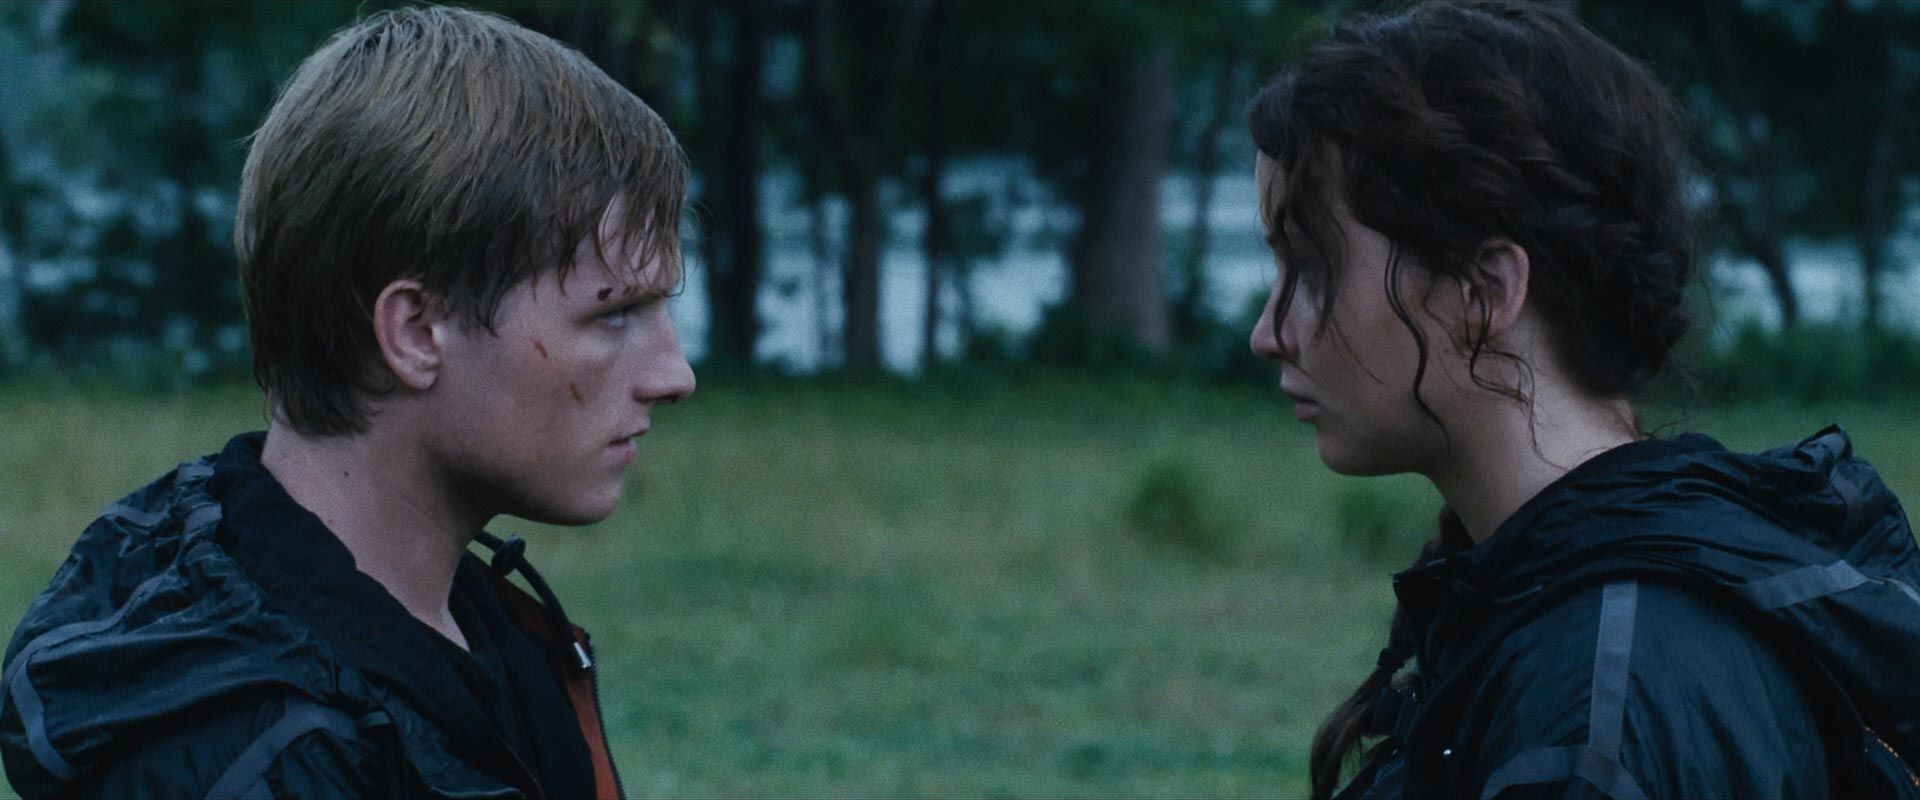 Are katniss and gale dating in the hunger games 8